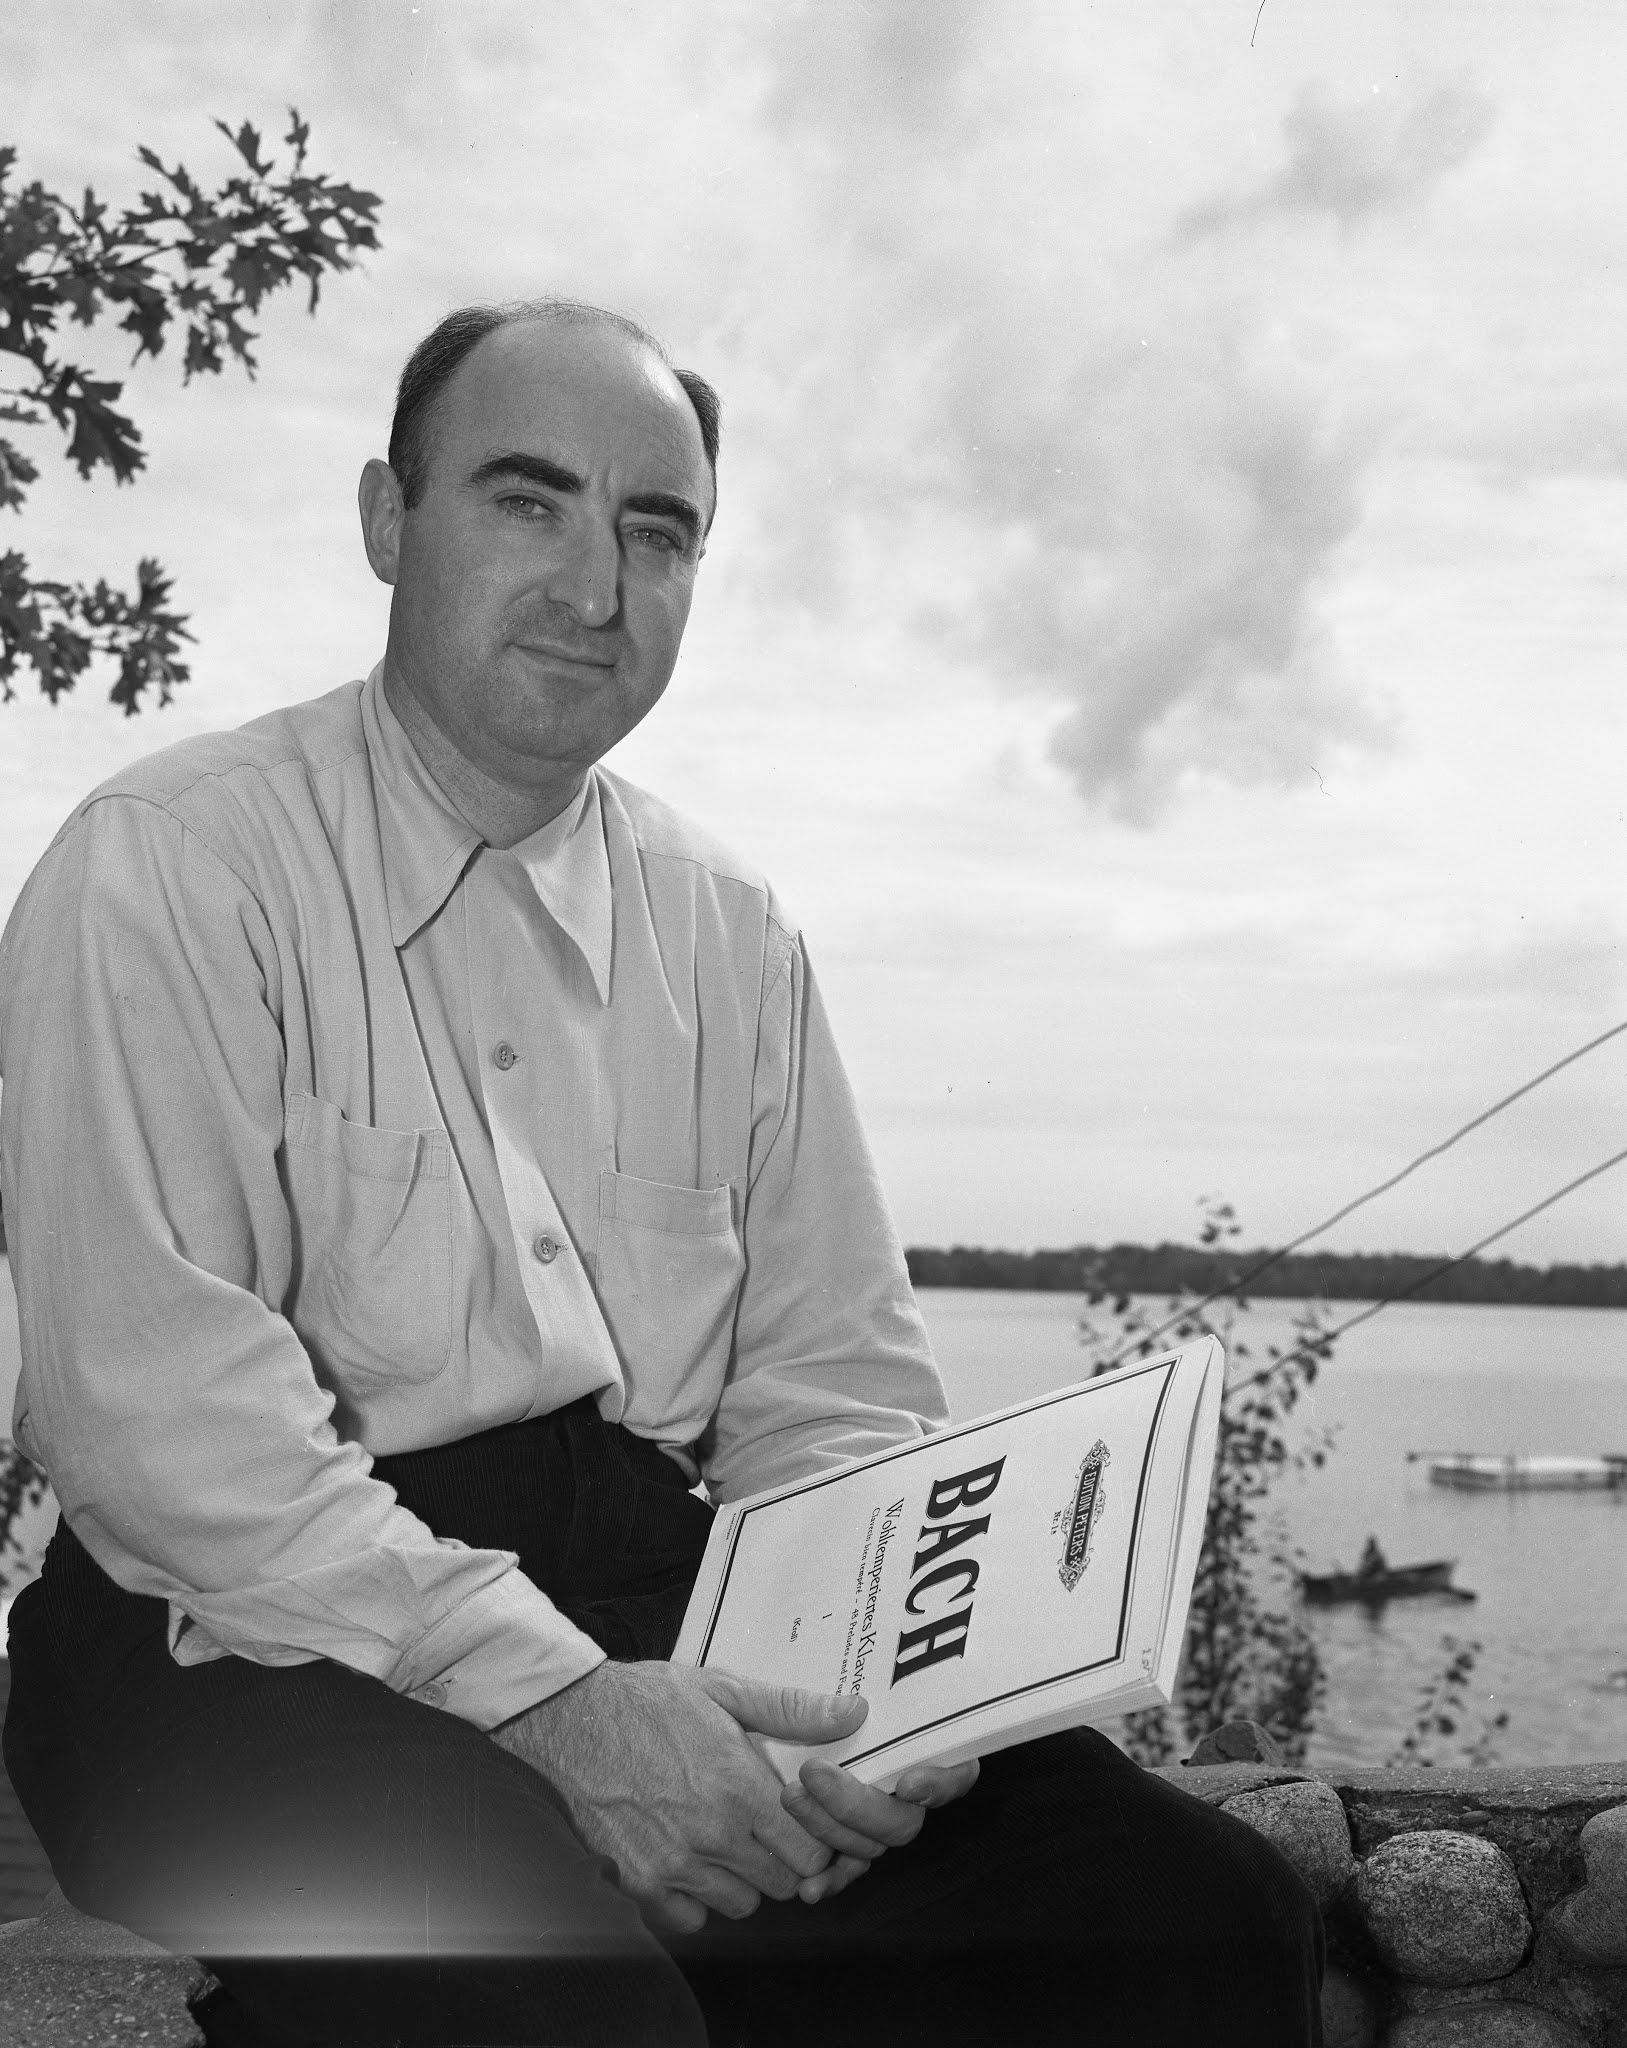 Caption: Pianist and NMC faculty member Henry Harris in 1953, Credit: Interlochen Center for the Arts